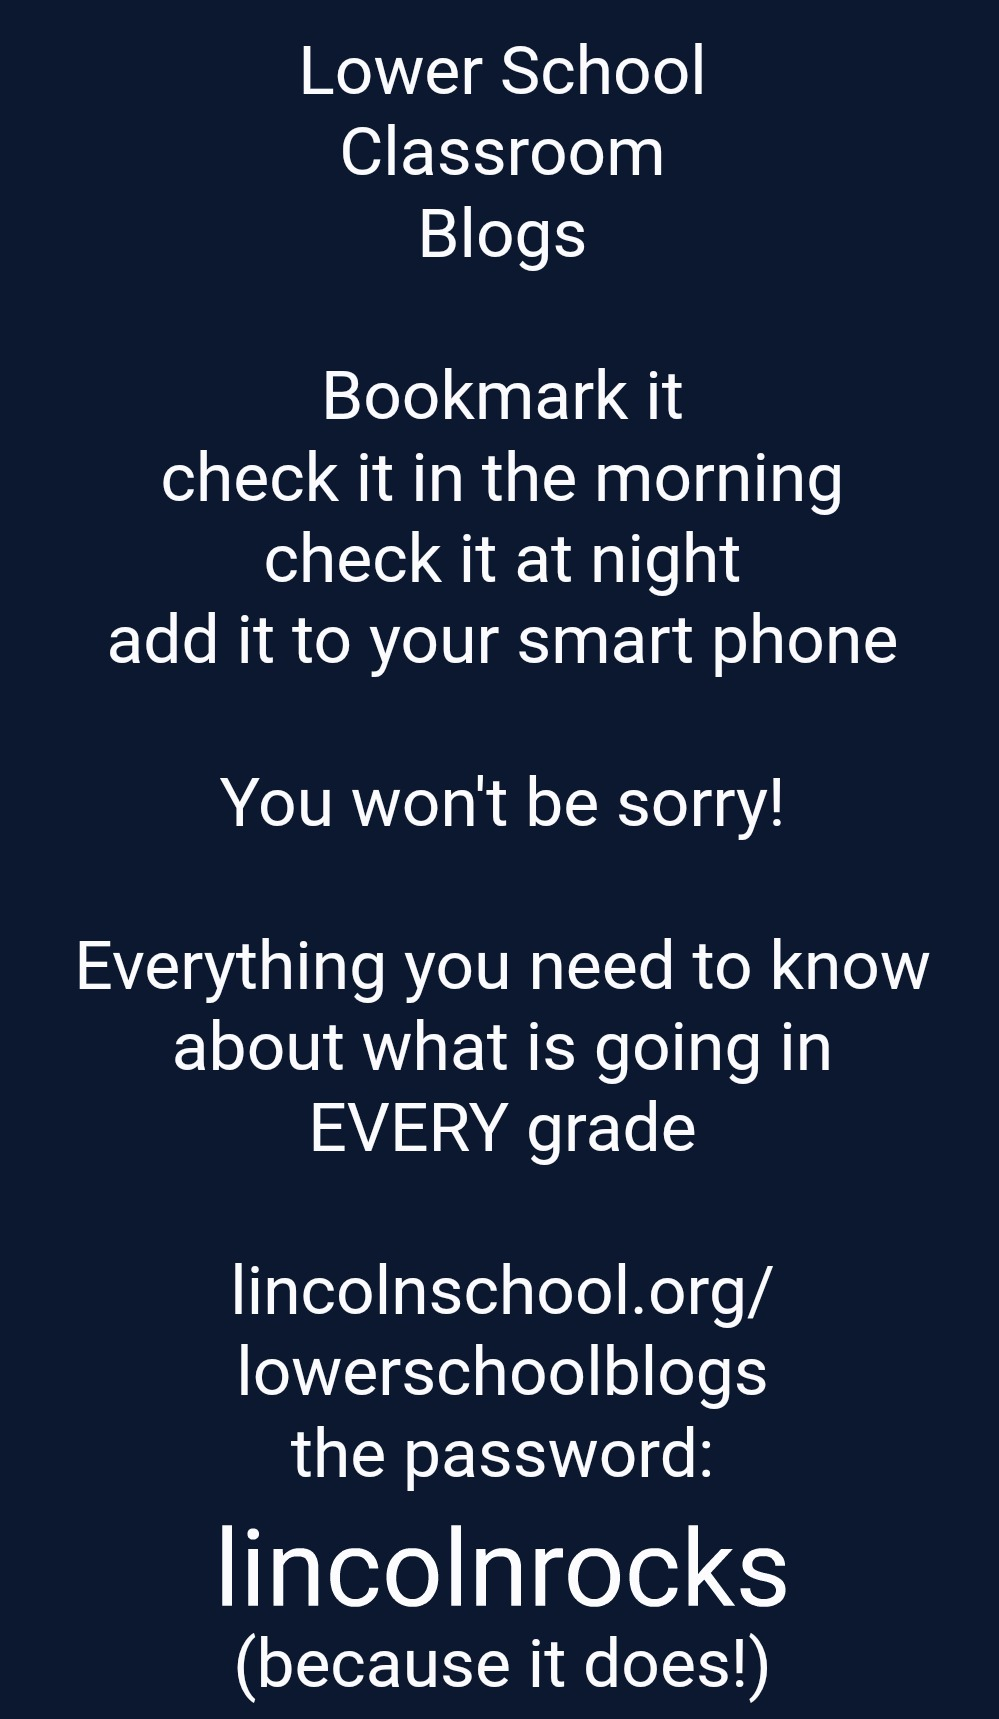 Lower School Classroom Blogs | Everything that is going on in every grade | Password: lincolnrocks